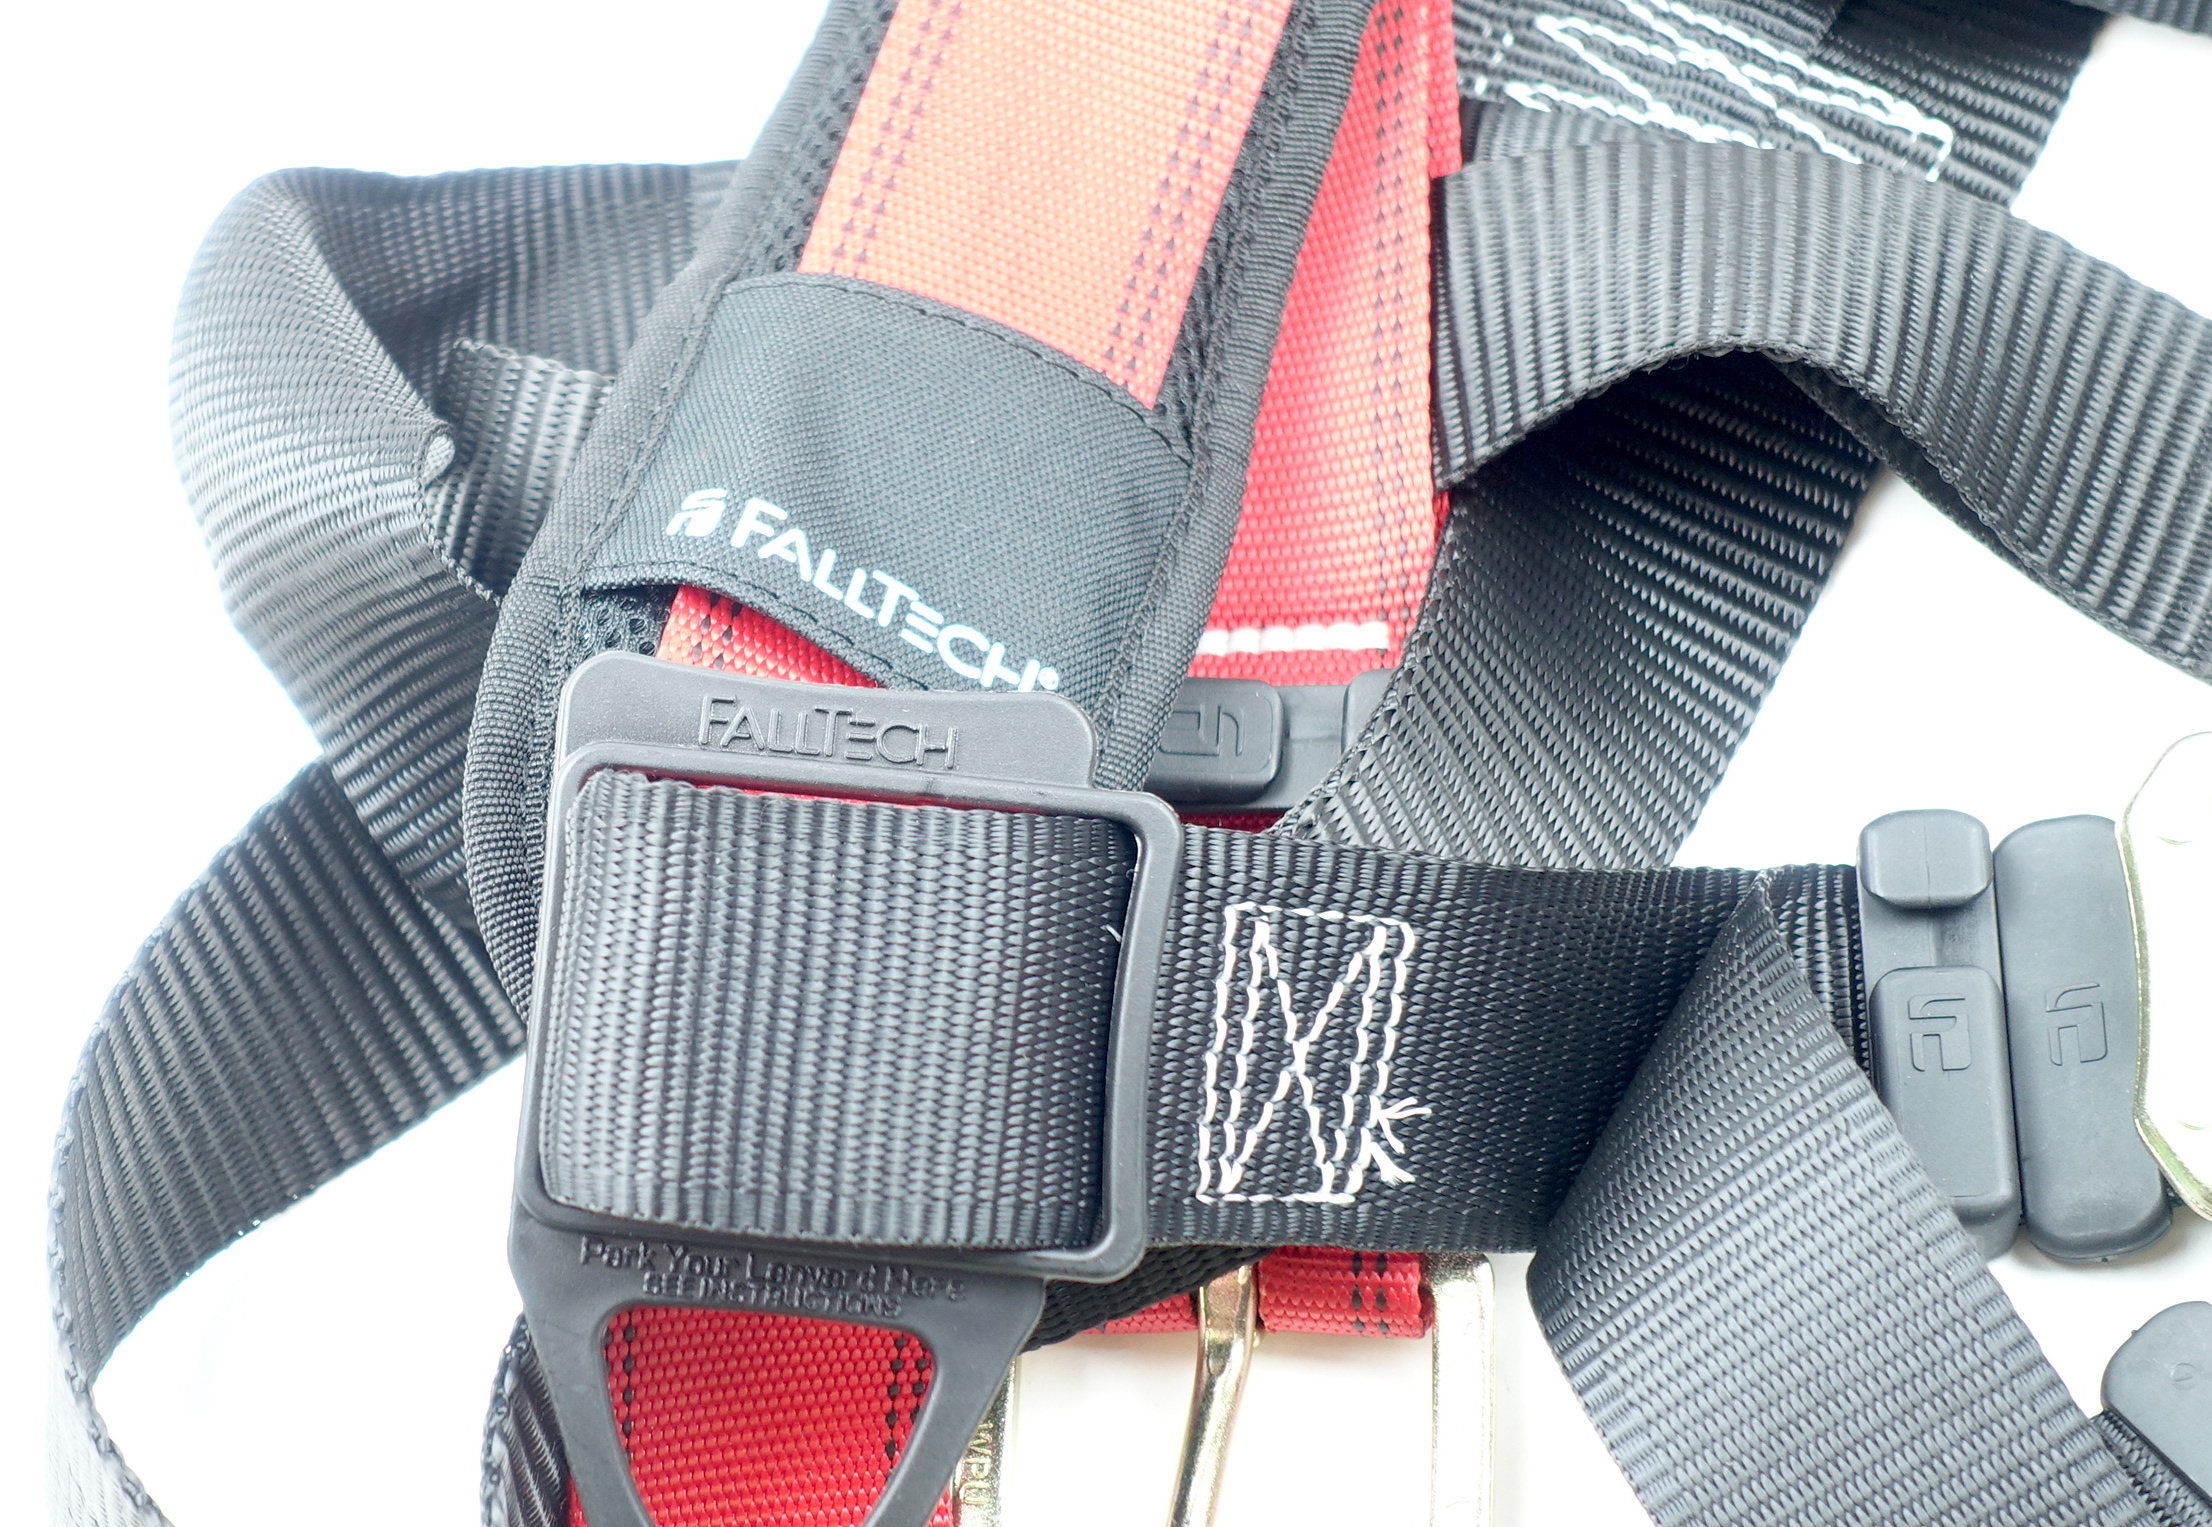 FallTech Fall Safety Harness L/XL Non-Belted Back D-Ring Tongue Buckle Legs - image 7